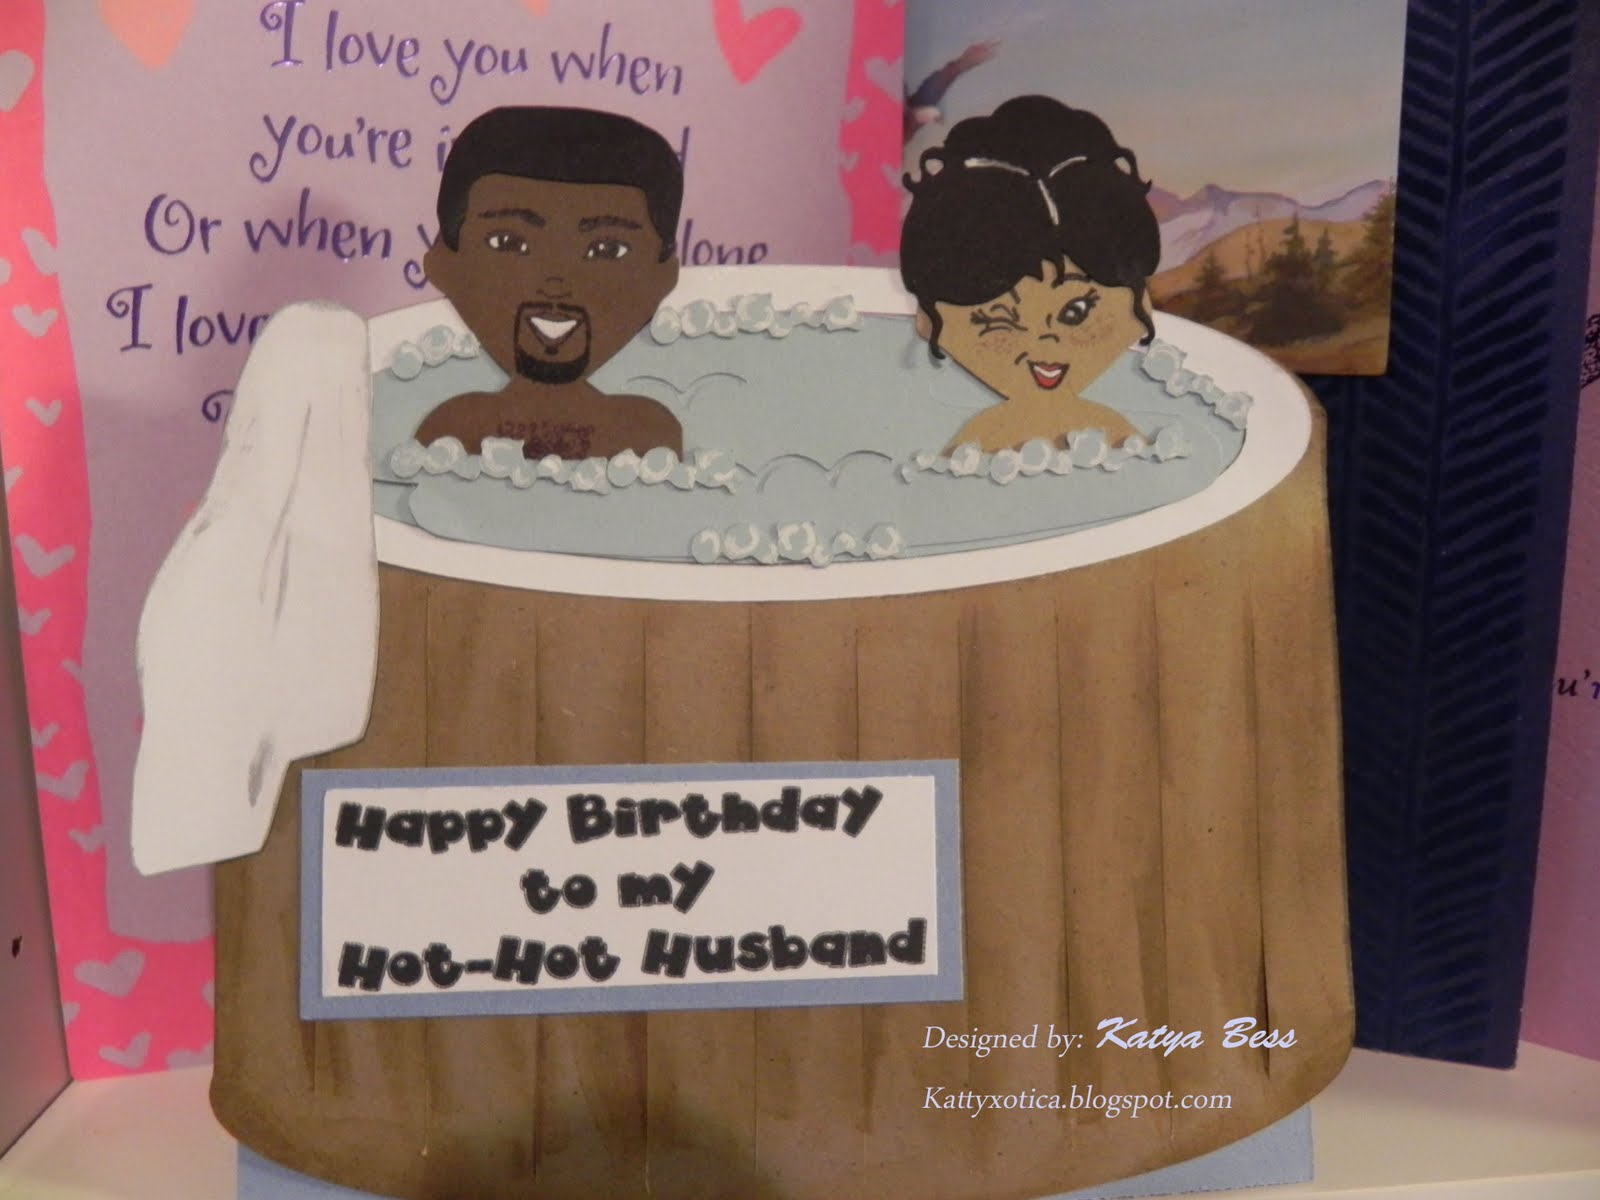 Lovely happy birthday cards for husband pics eccleshallfc kattyxotica s kreations my husband s birthday card hot tub love kristyandbryce Image collections